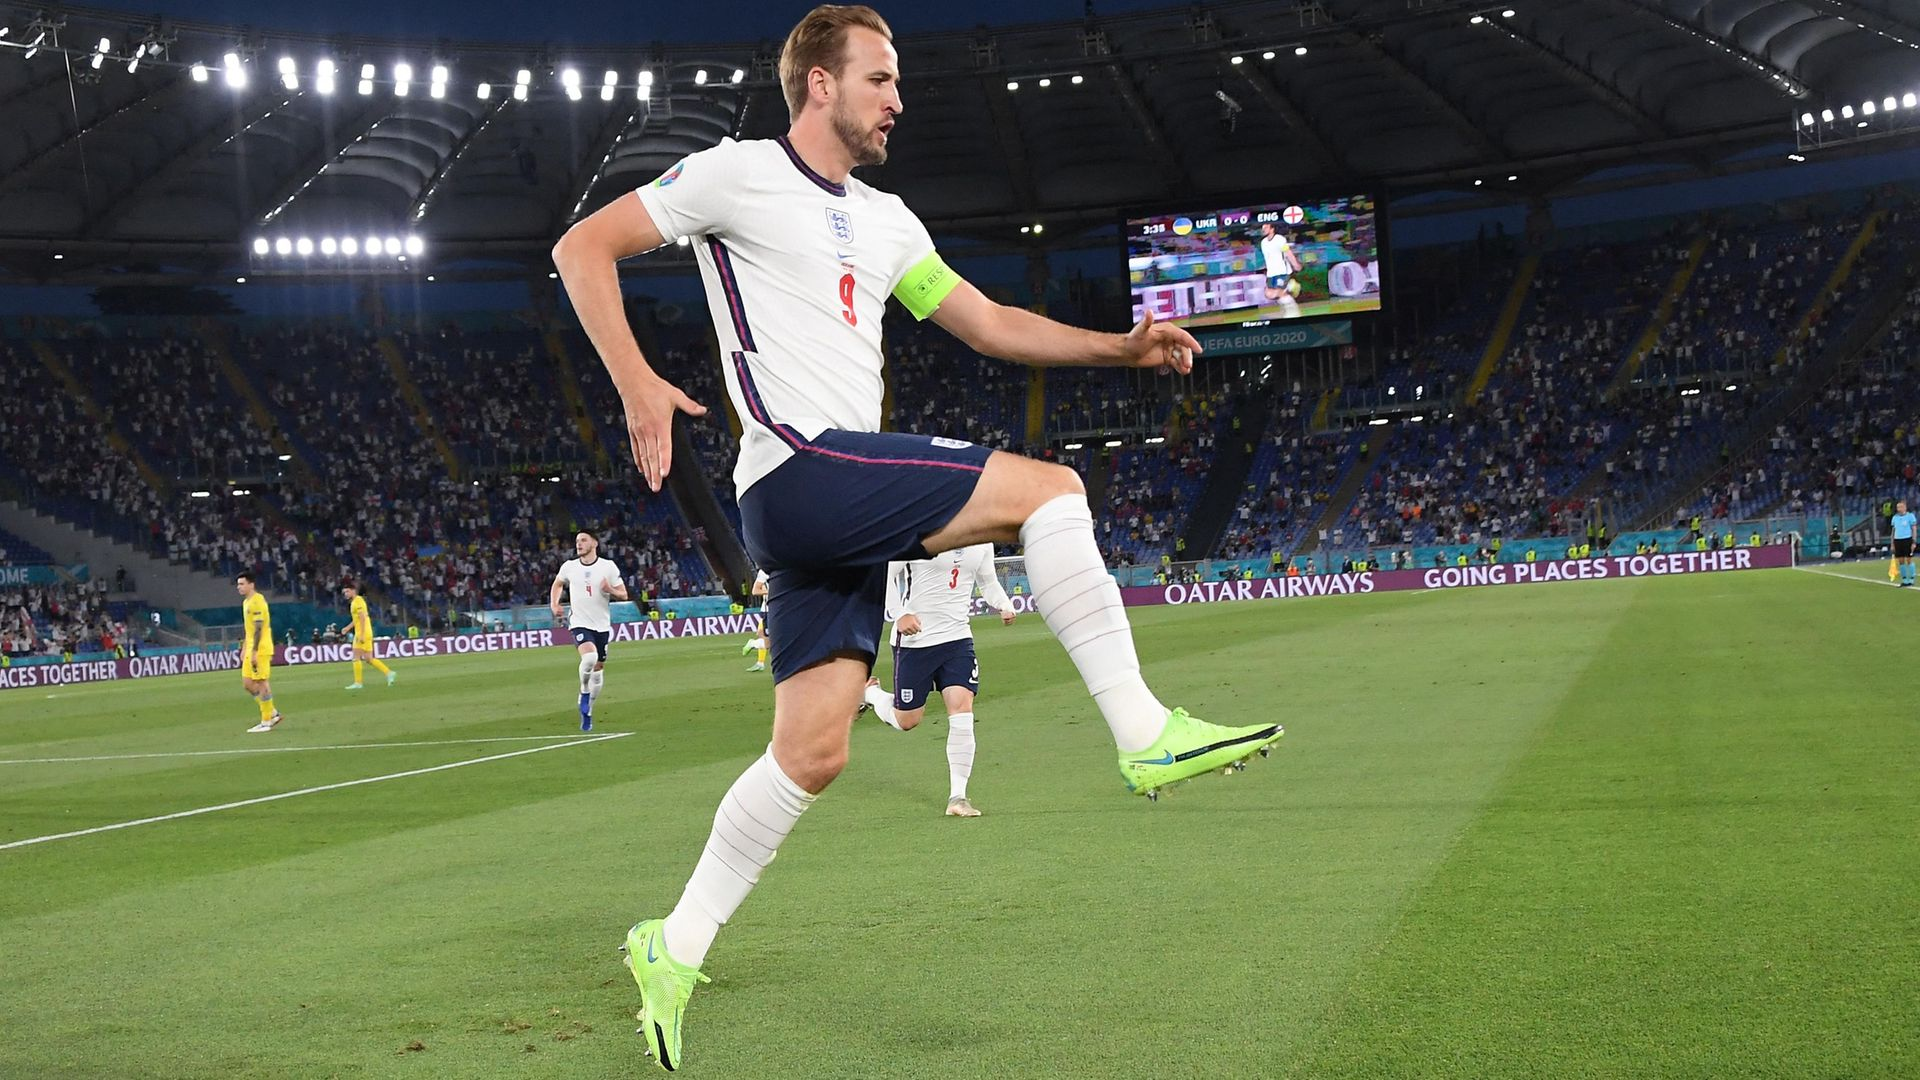 Harry Kane celebrates after scoring the first goal during England's 4-0 victory over Ukraine in Rome's Olympic Stadium - Credit: POOL/AFP via Getty Images